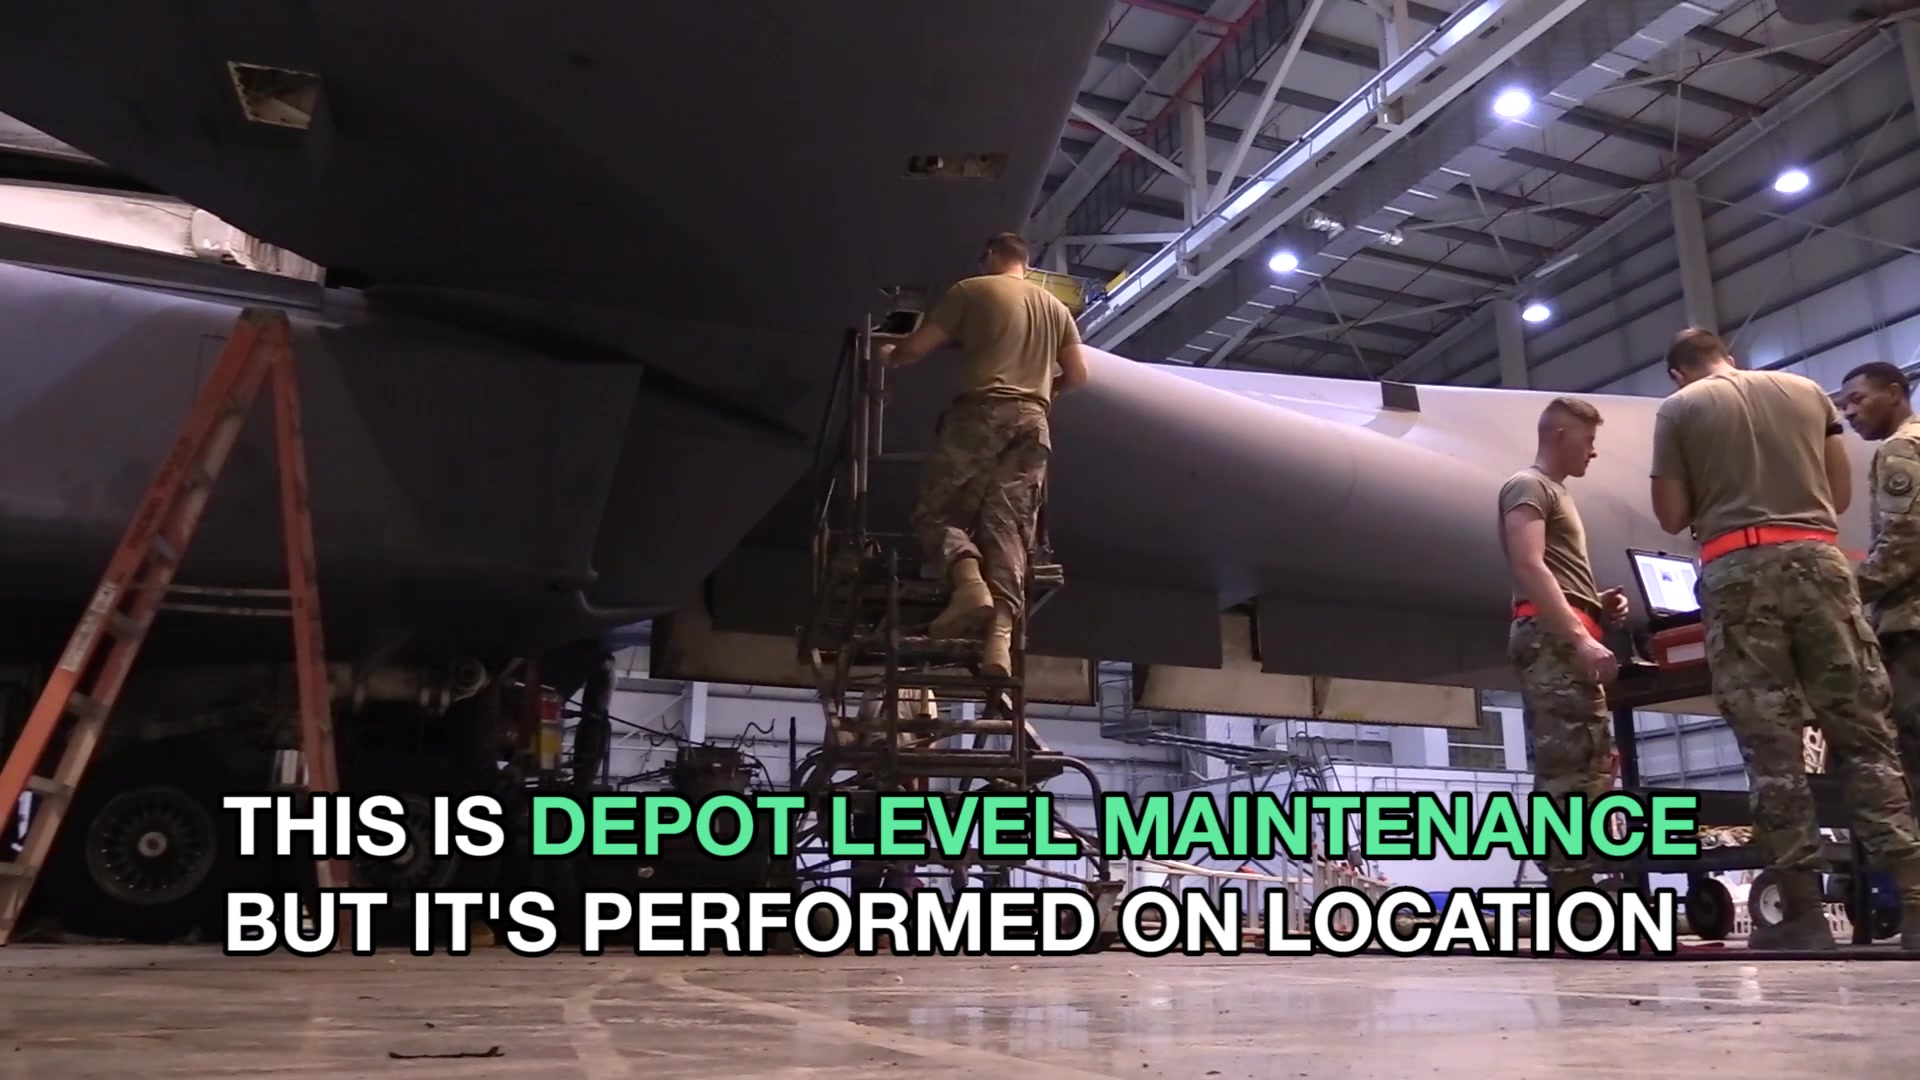 Depot level field team Airmen from the 76th Aircraft Maintenance Group at Tinker Air Force Base, OK, traveled to Al Udeid AB, Qatar, to work alongside Airmen from the 379th Expeditionary Maintenance Group to complete air worthiness inspections of B-1 aircraft.